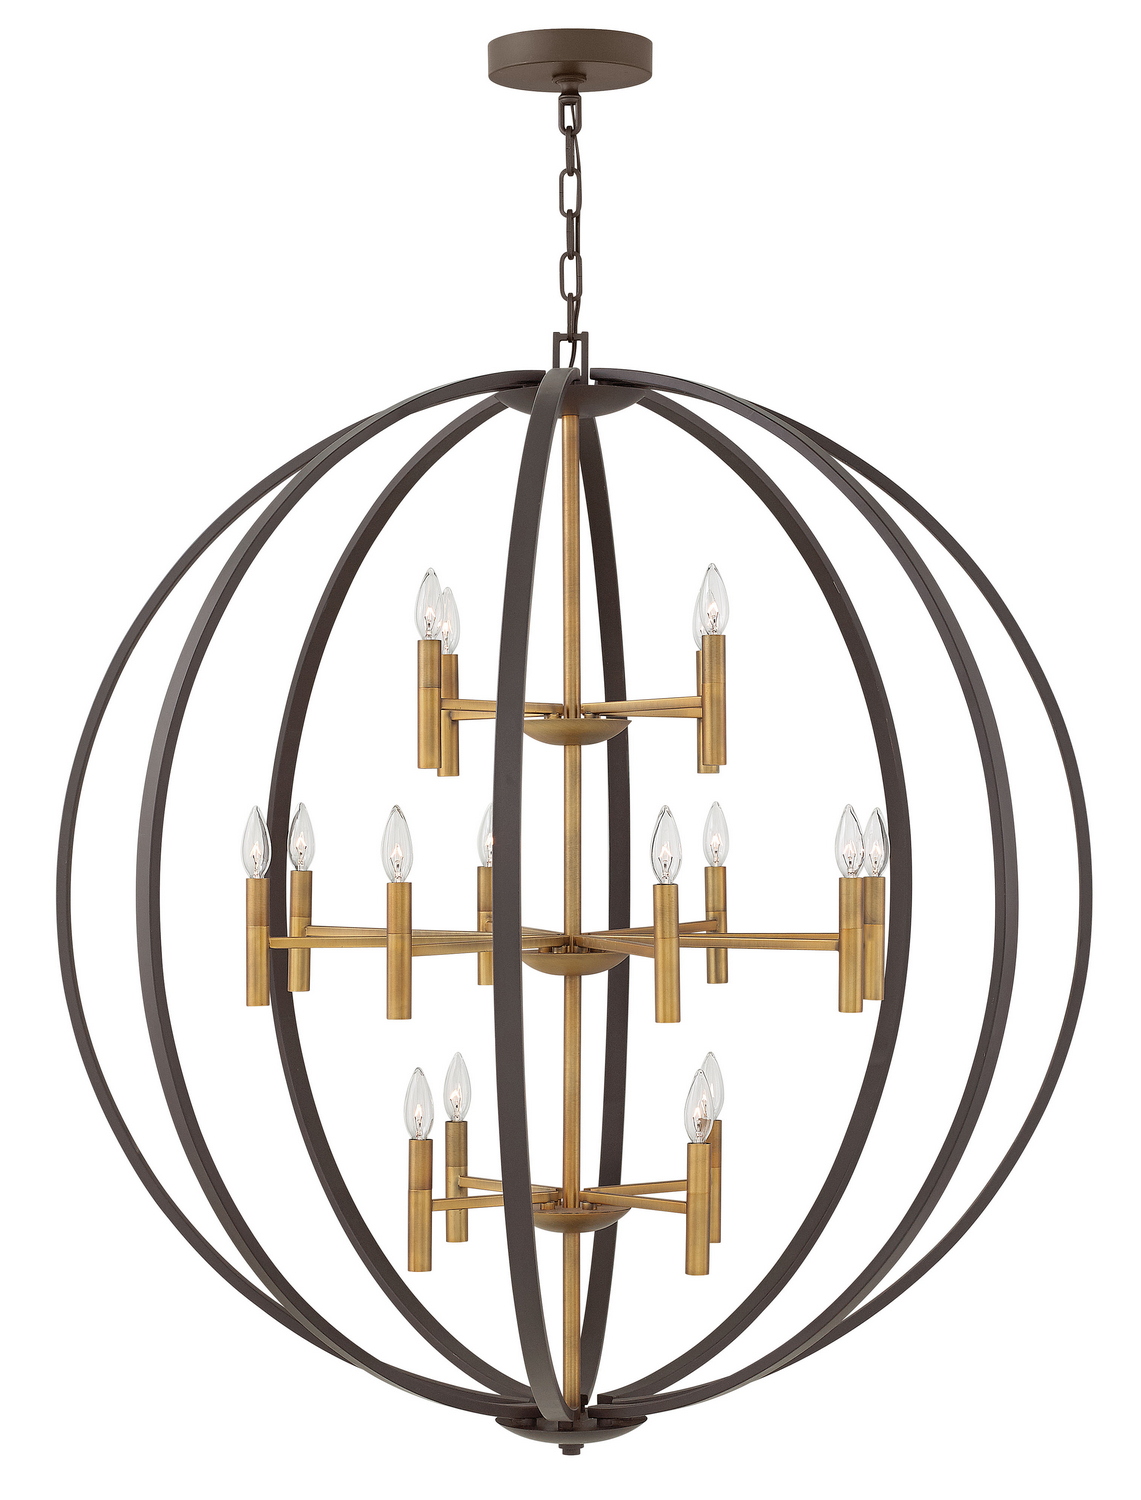 16 Light Chandelier from the Euclid collection by Hinkley 3464SB